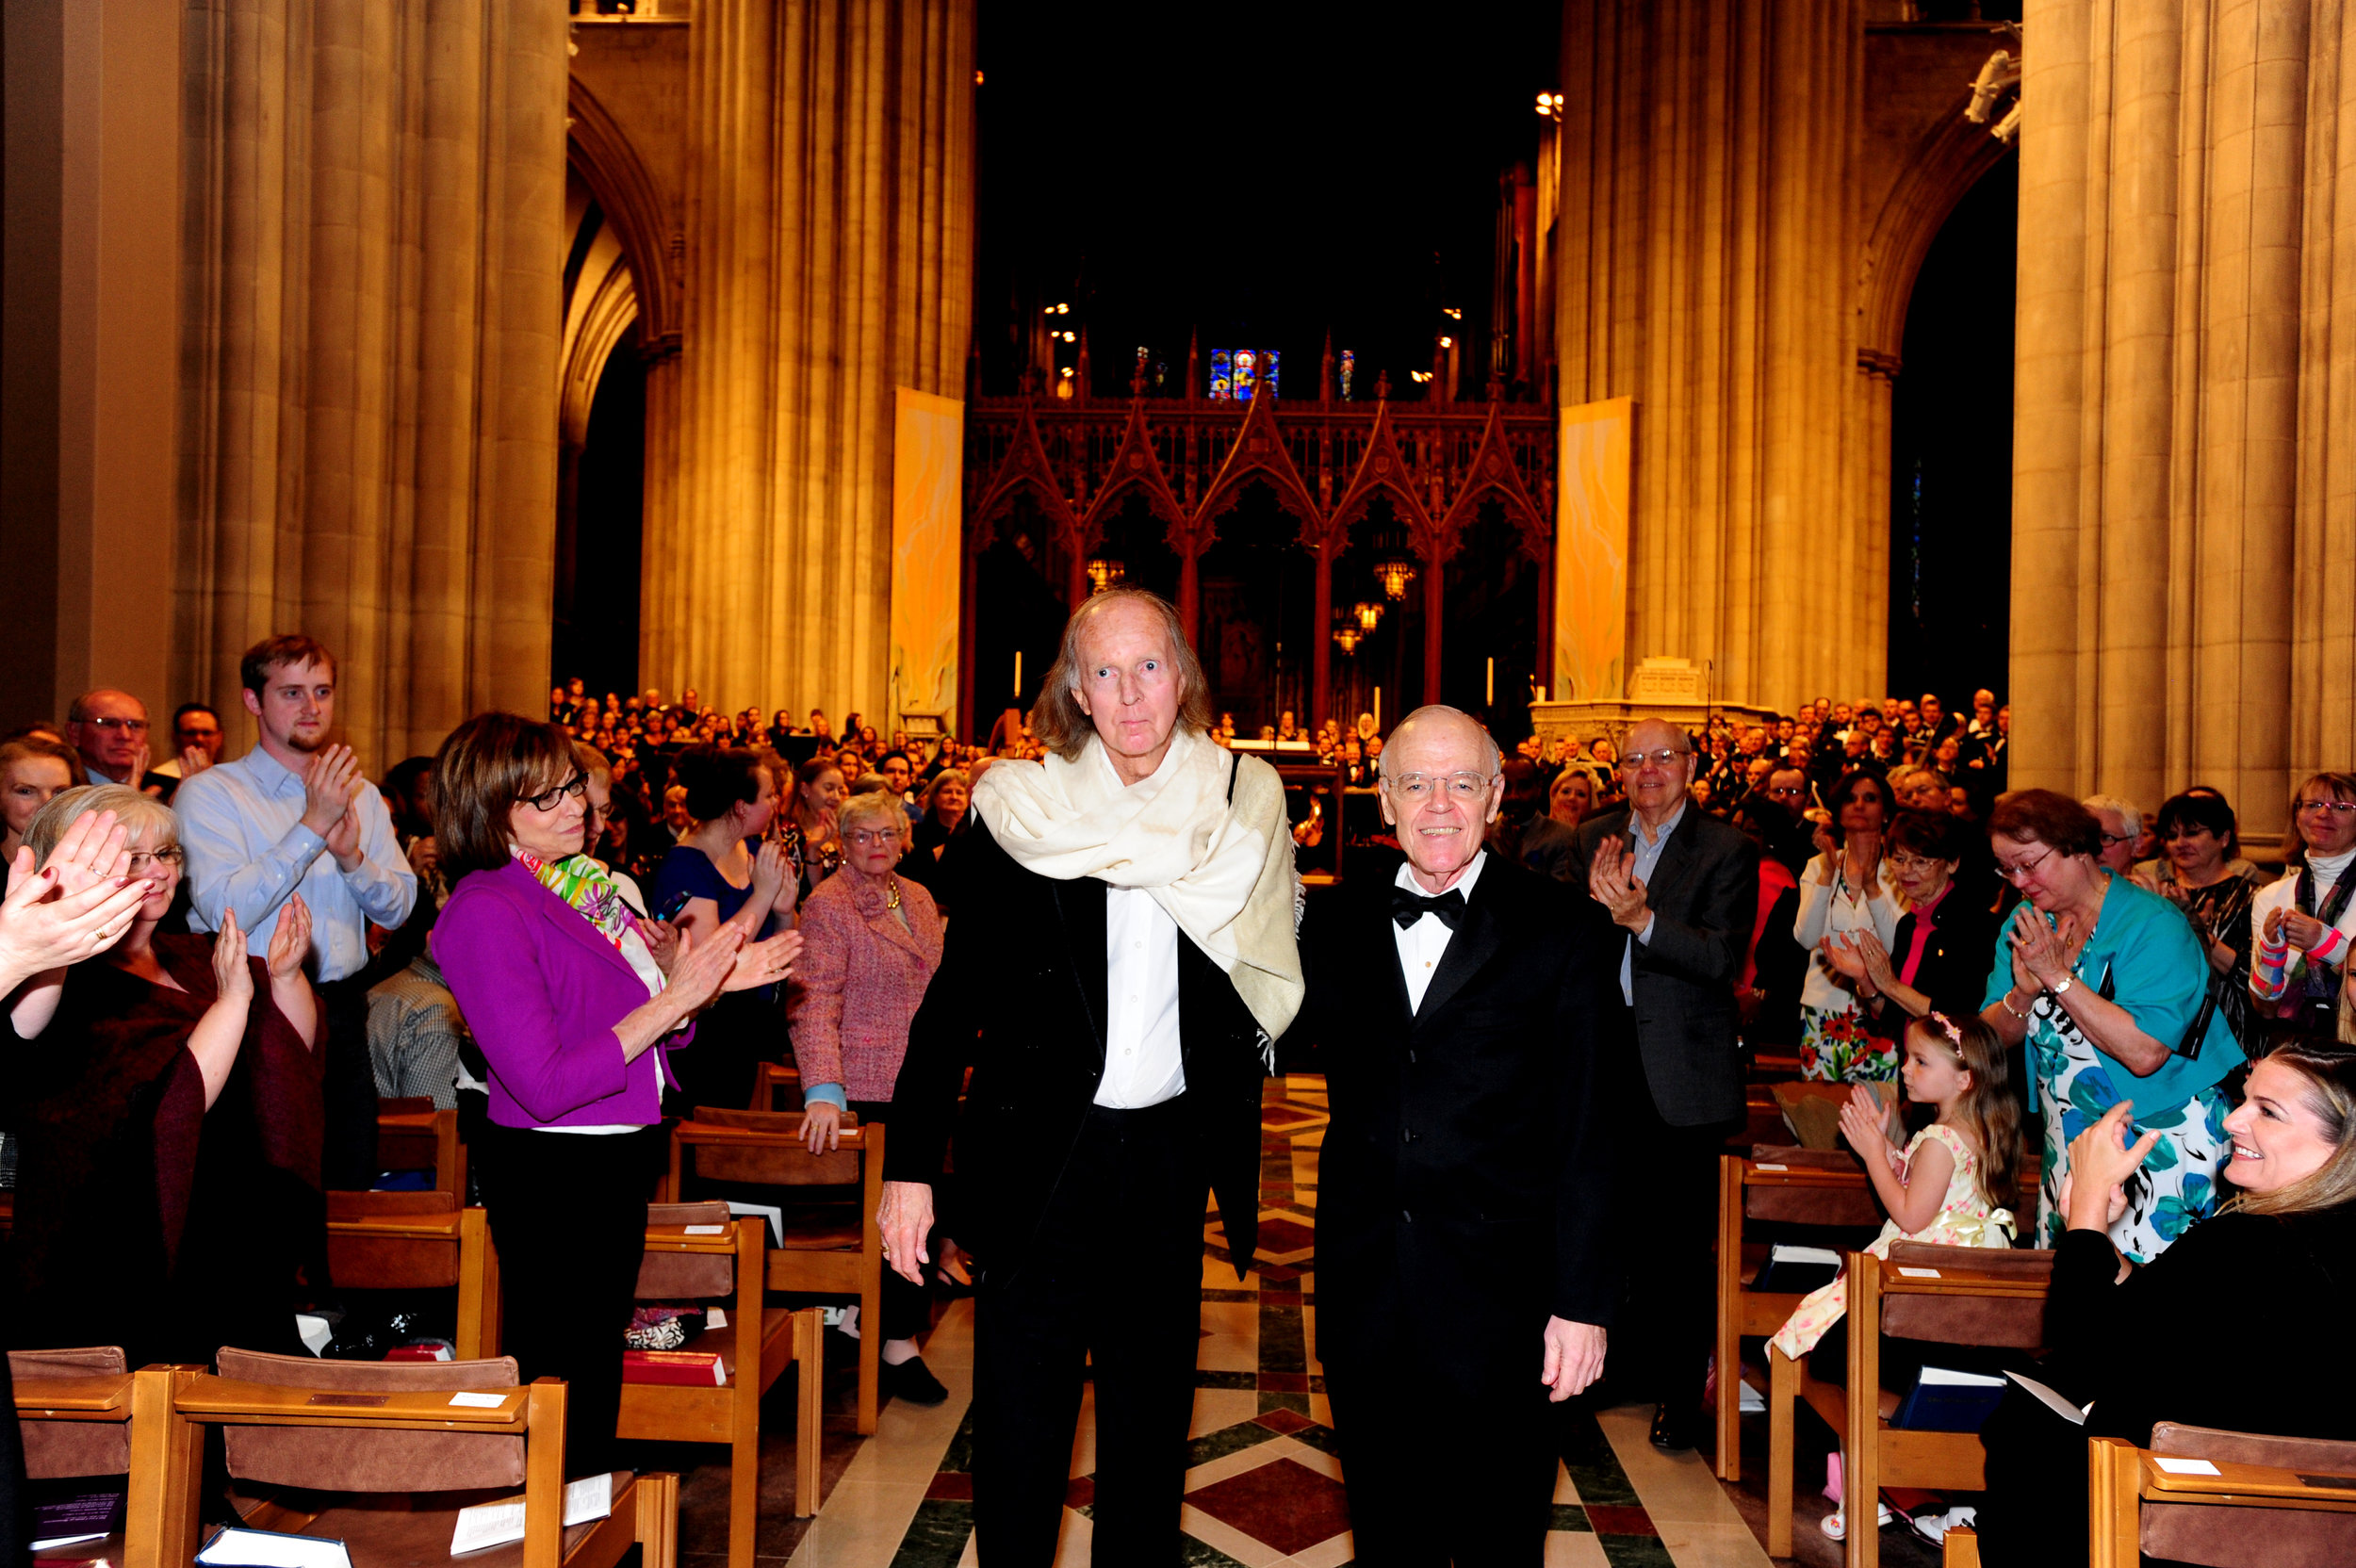 April 2014, Sir John Tavener & Robert Shafer